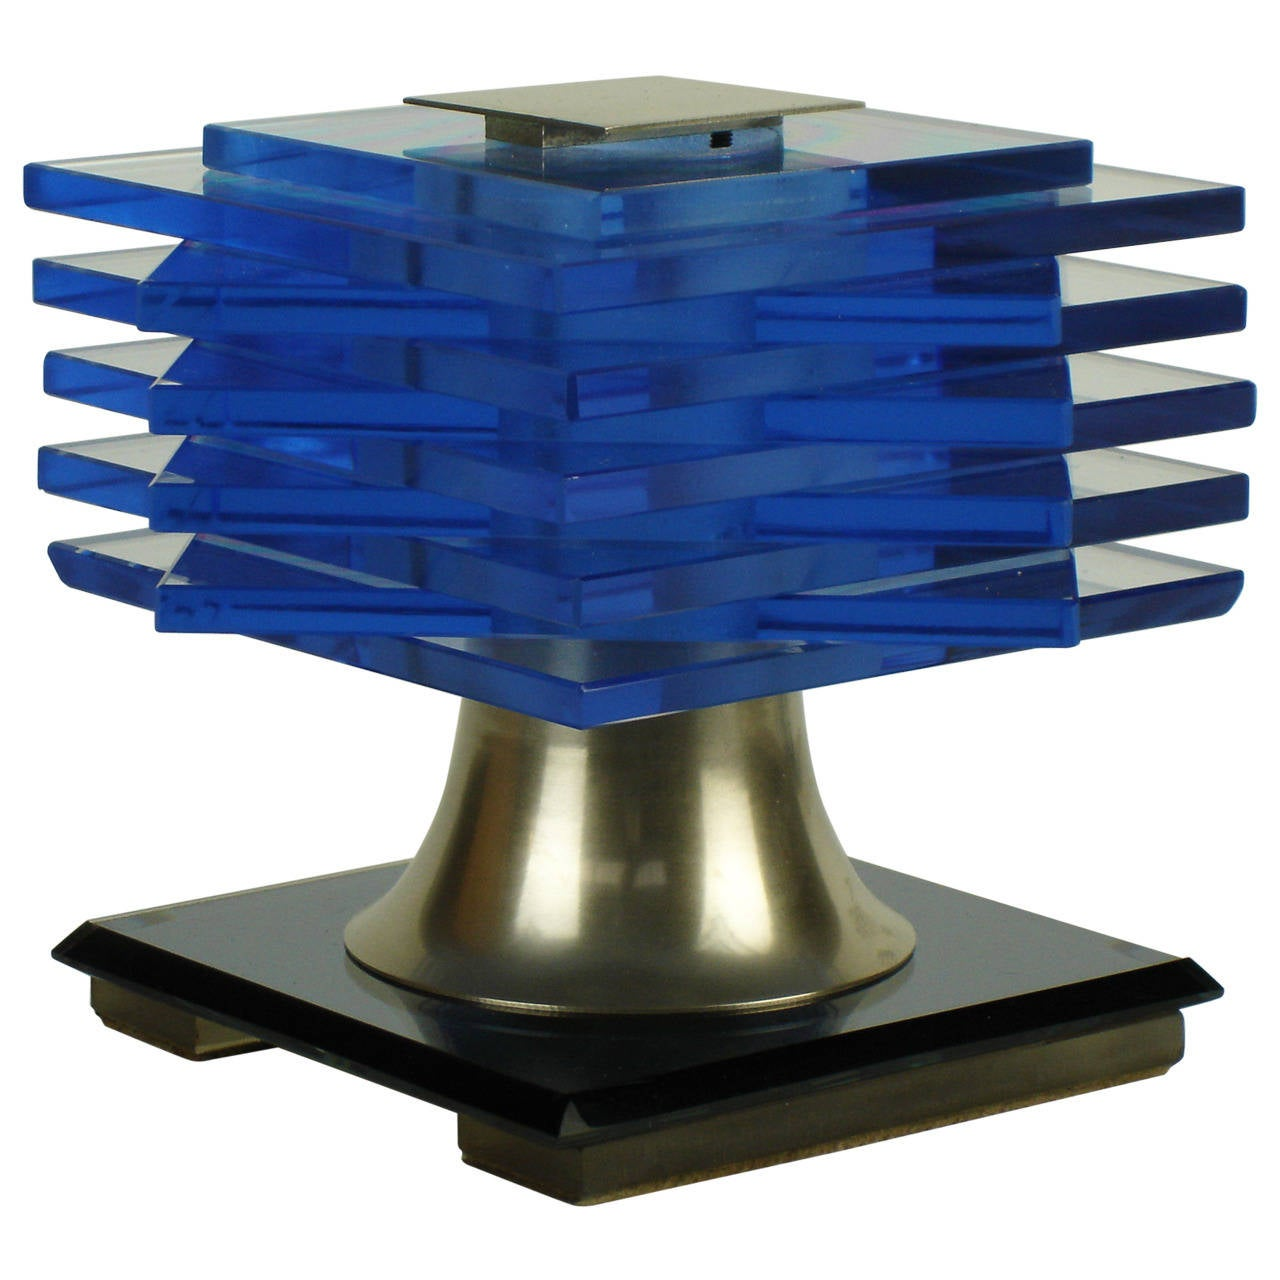 blue glass table lamp by maison desny. Black Bedroom Furniture Sets. Home Design Ideas